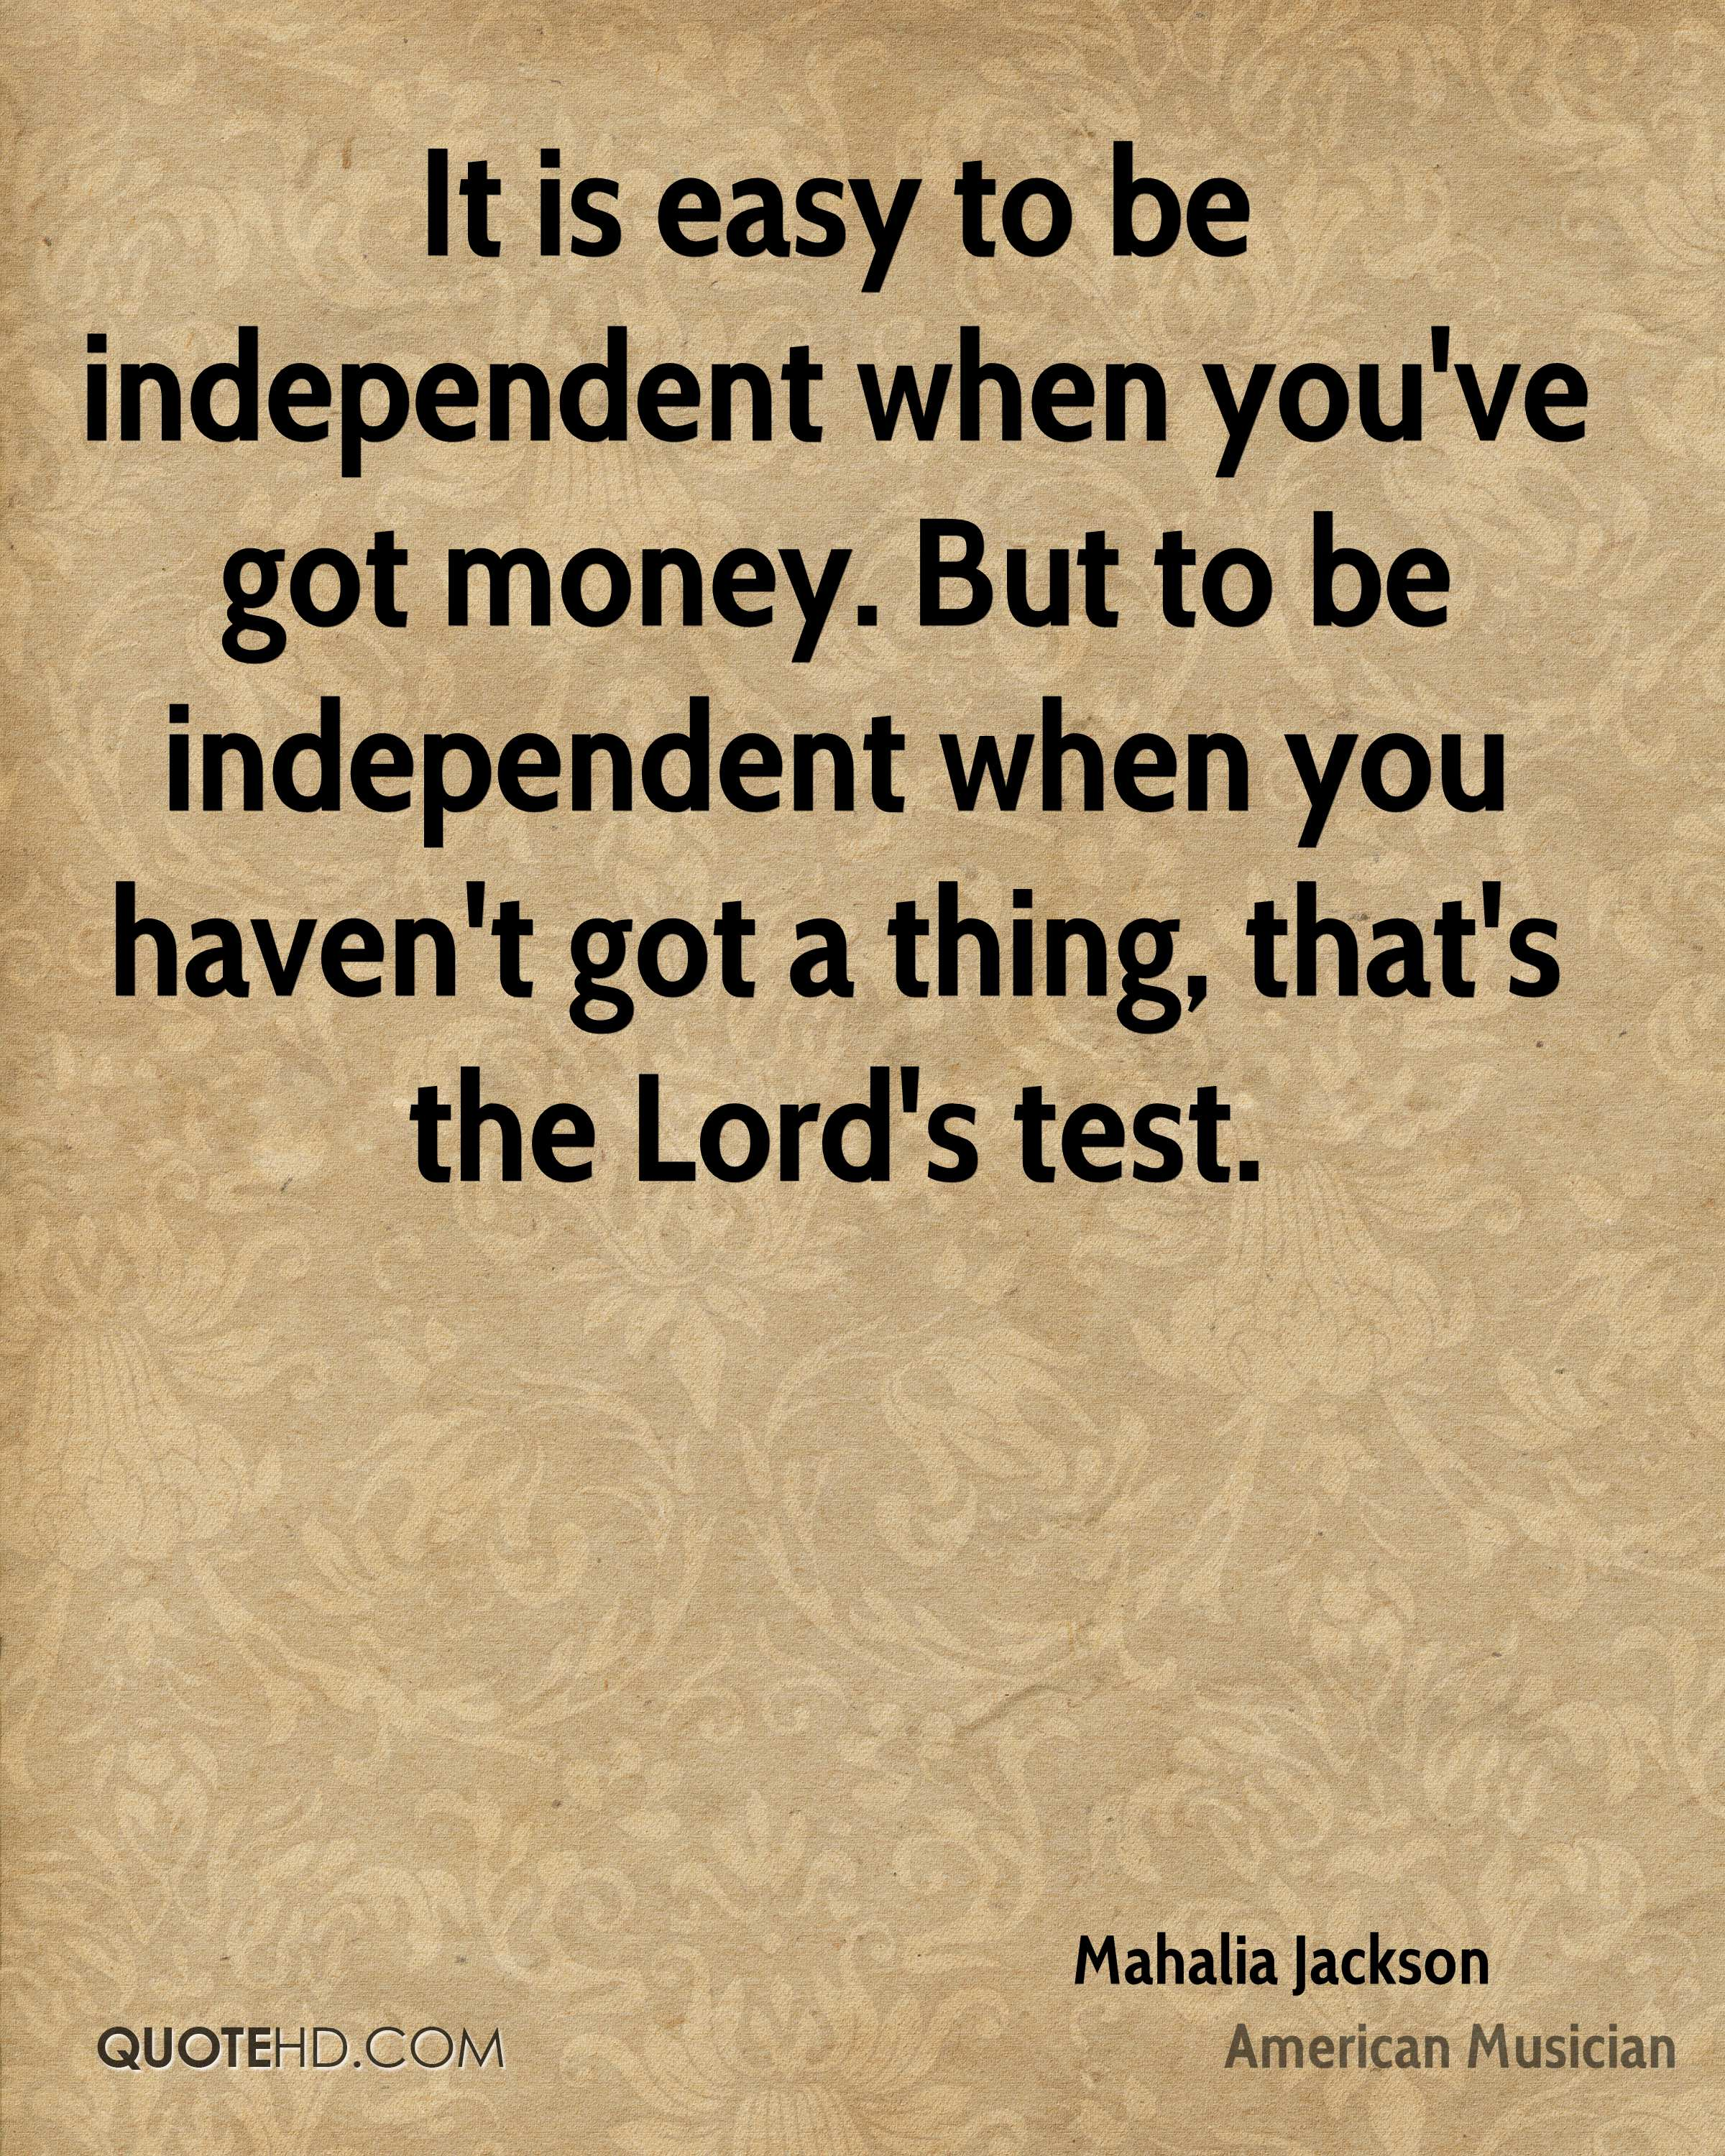 It is easy to be independent when you've got money. But to be independent when you haven't got a thing, that's the Lord's test.